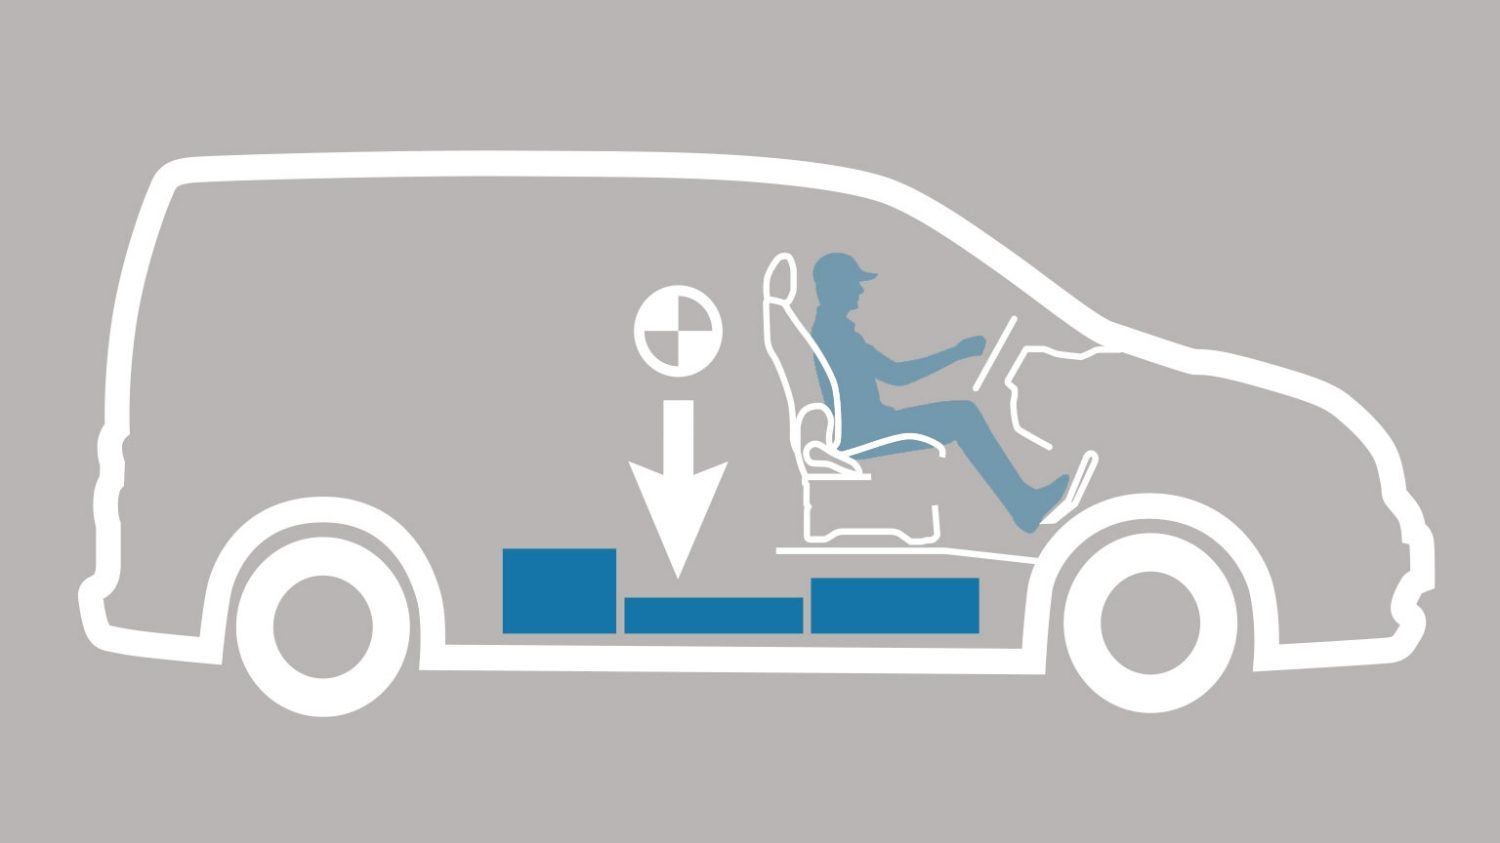 Nissan e-NV200 - Illustration du centre de gravité abaissé